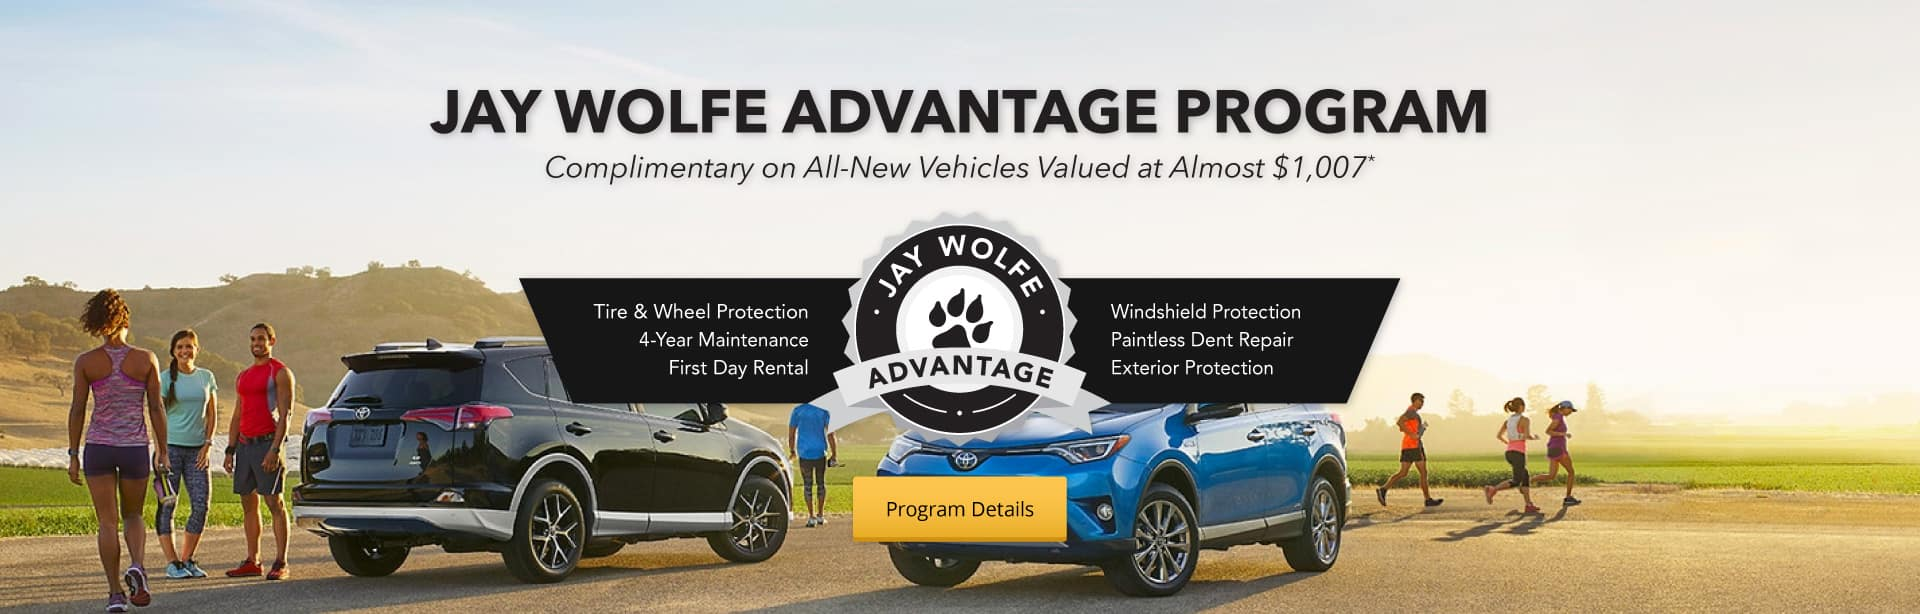 Jay Wolfe Advantage Program